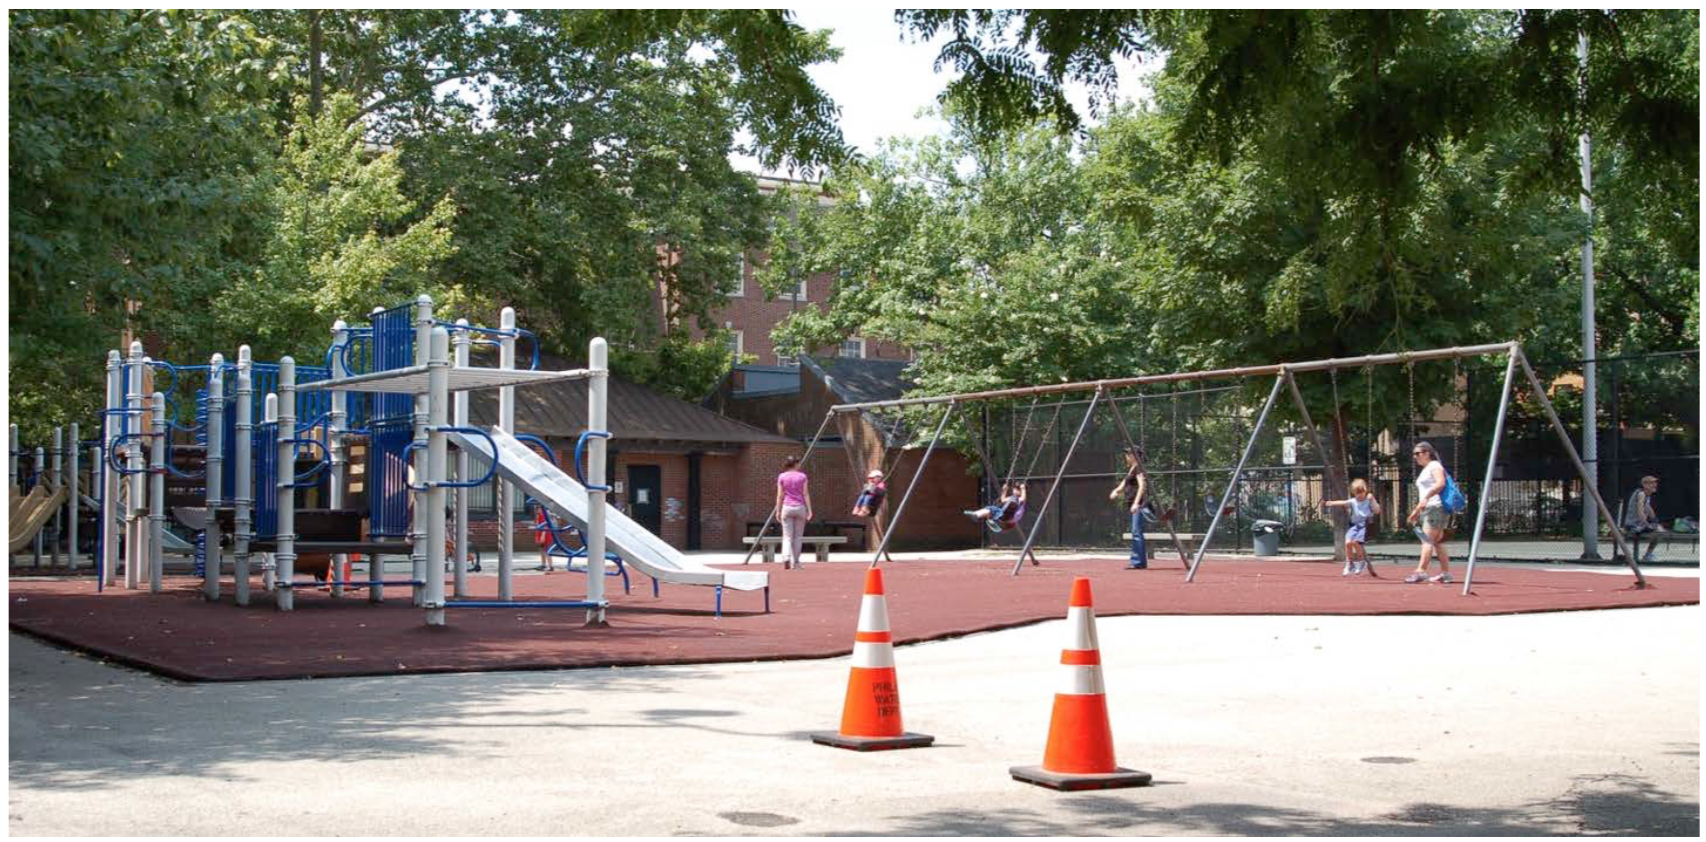 Photograph of the Weccacoe Playground proper, which is located to the northeast of the actual burial ground